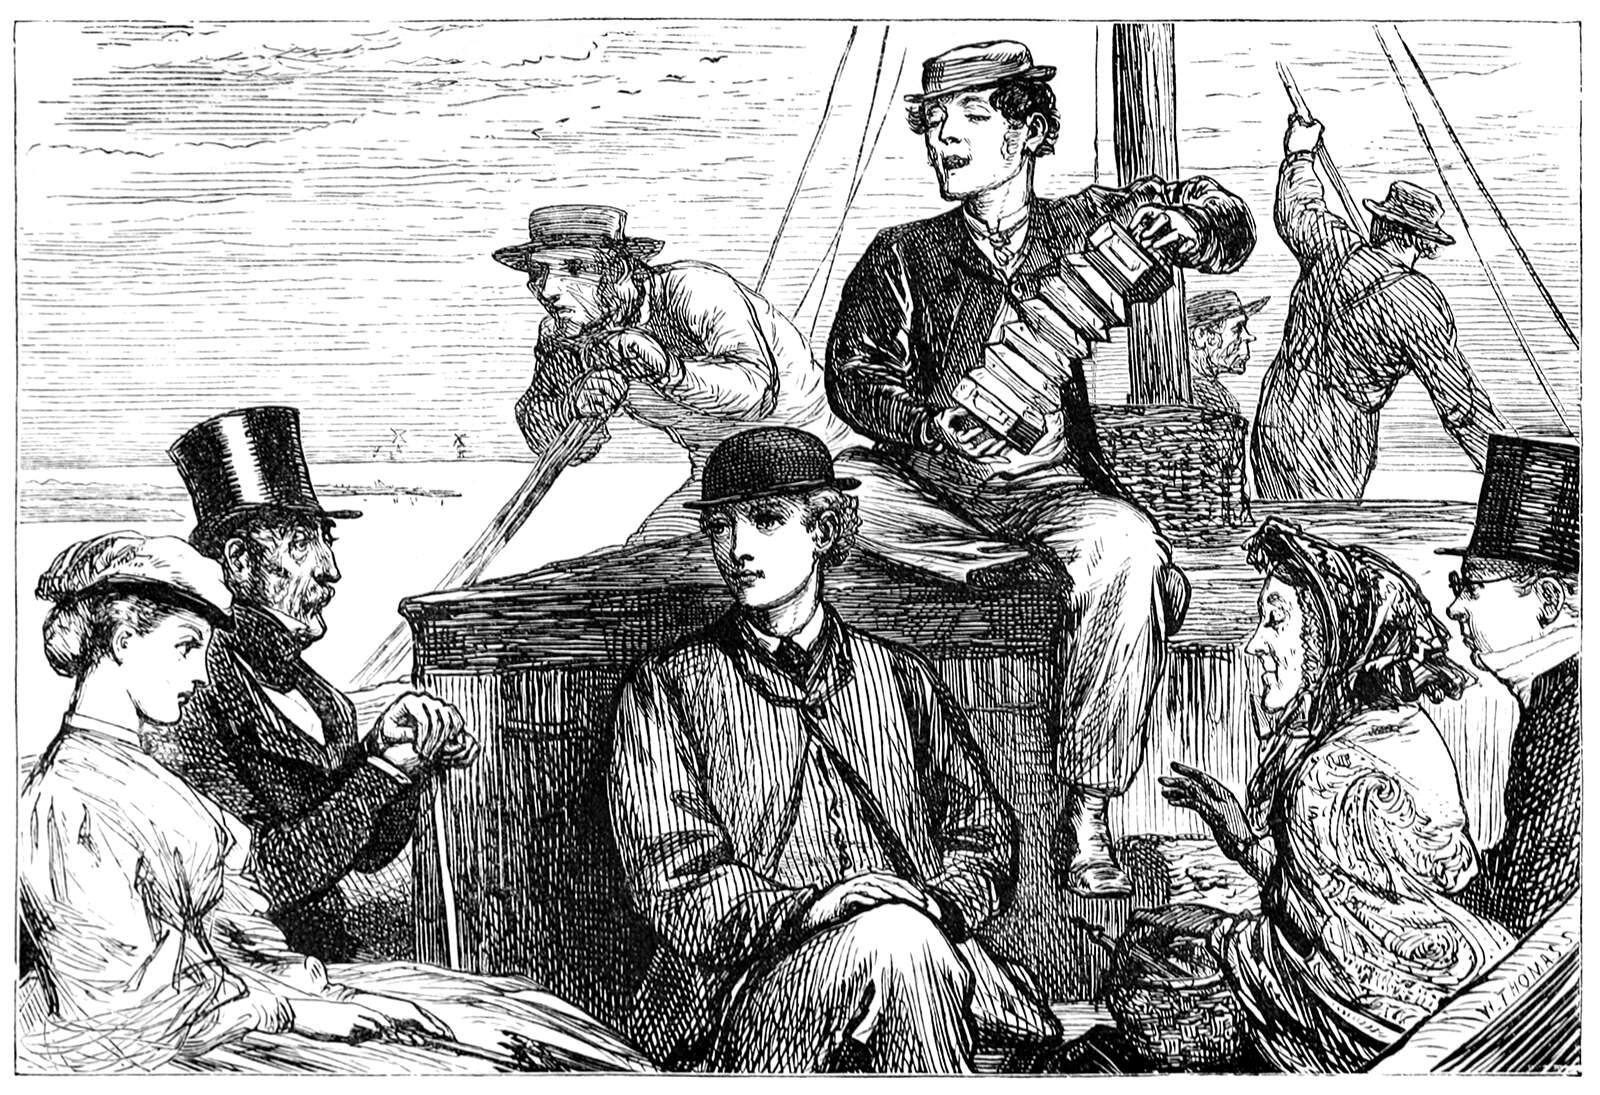 An illustration of a group of people playing music